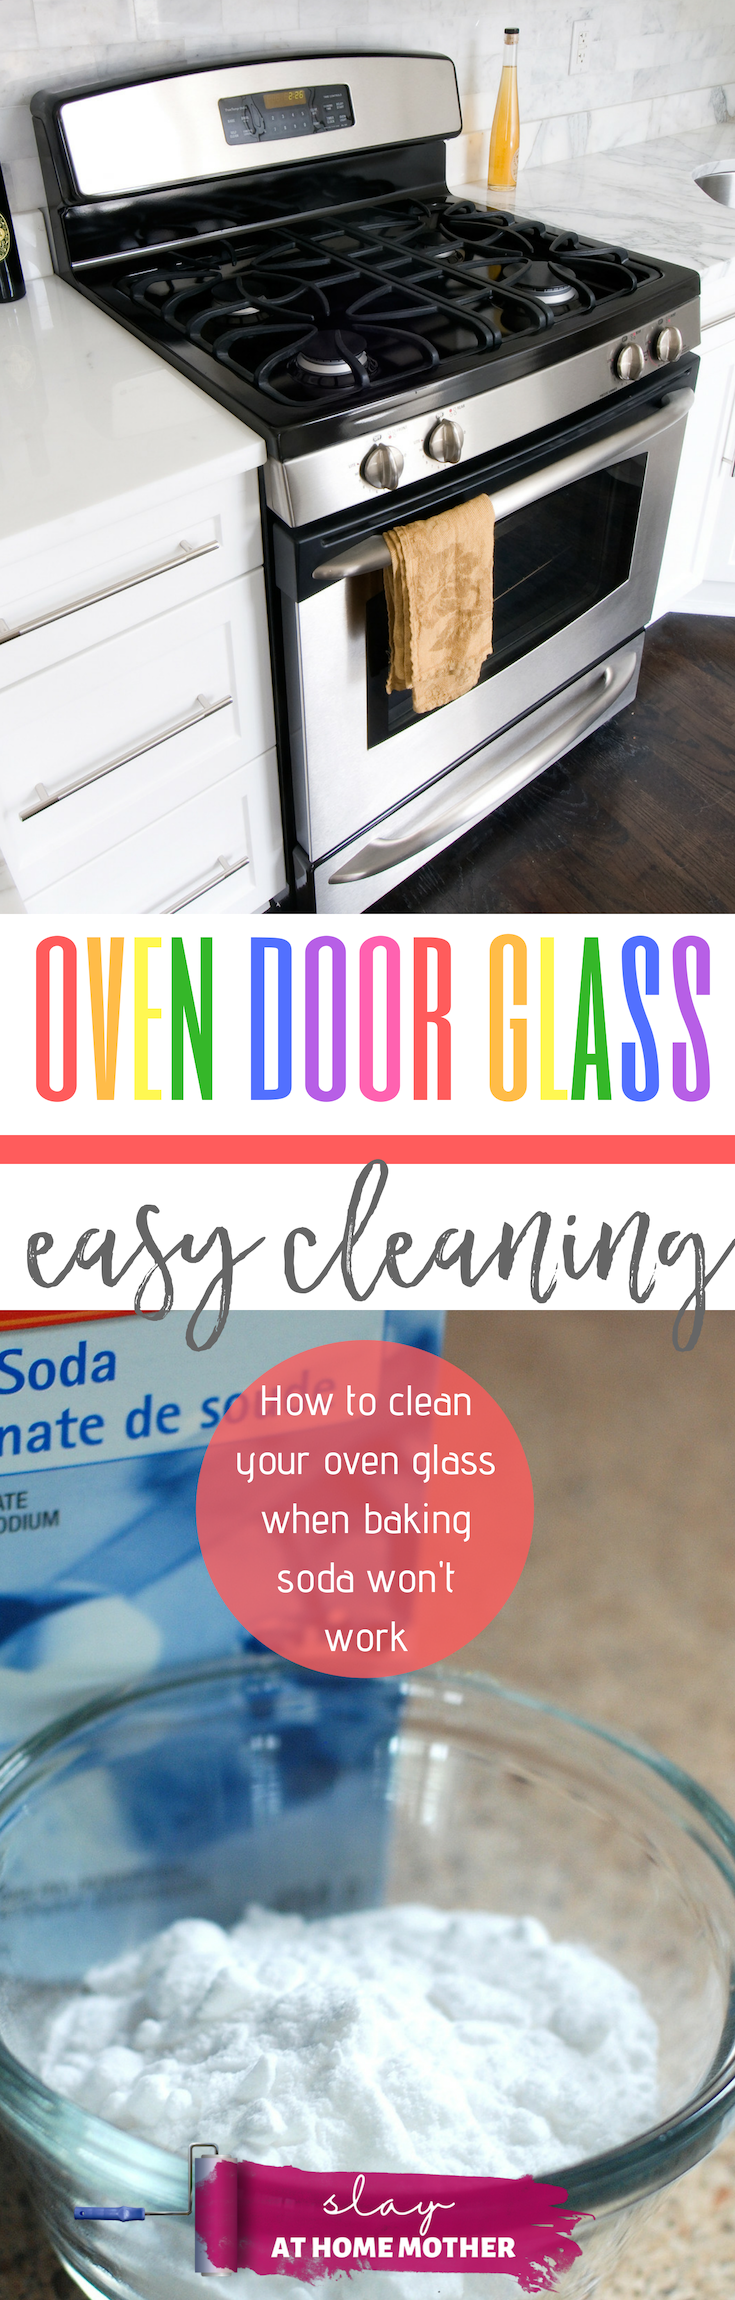 How To Clean Your Oven Door Glass When Baking Soda Doesn't Work... #slayathomemother #oven #cleaning #cleaninghack -- SLAYathomemother.com